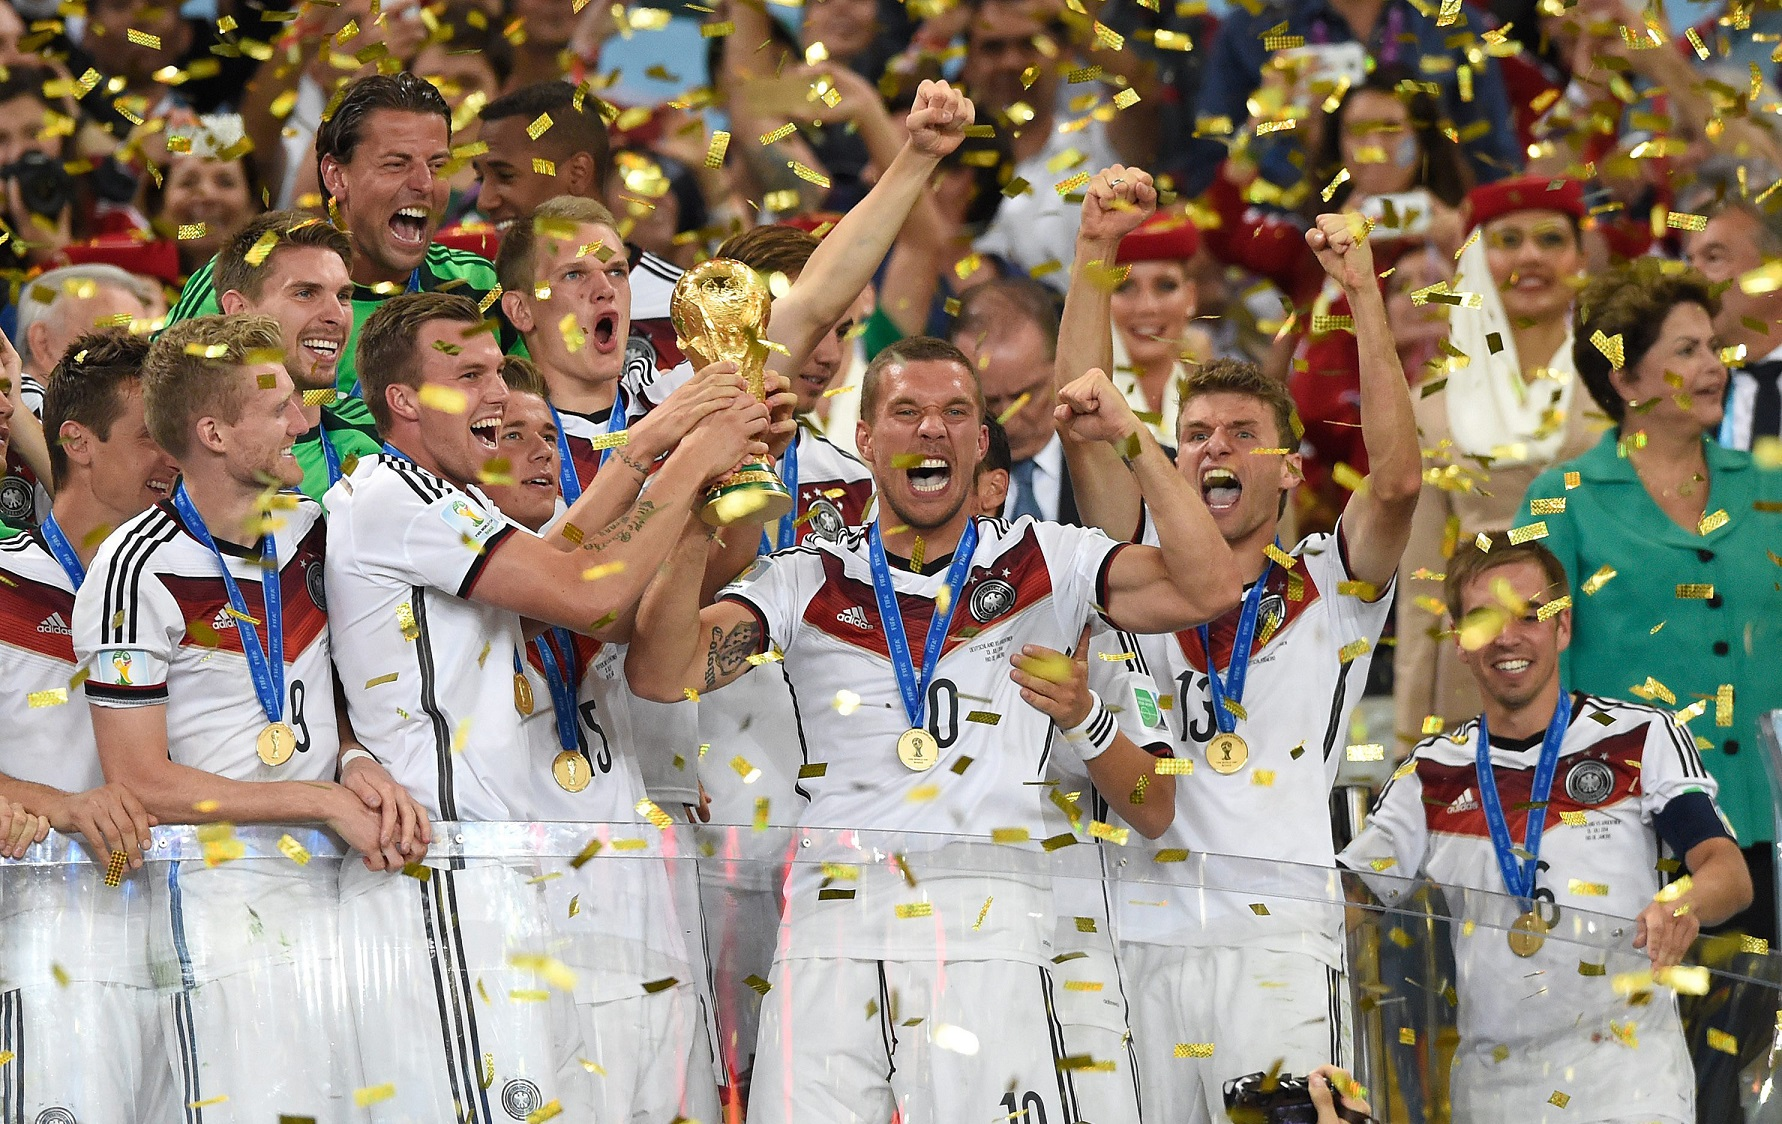 2014 World Cup final: Germany wins its fourth title